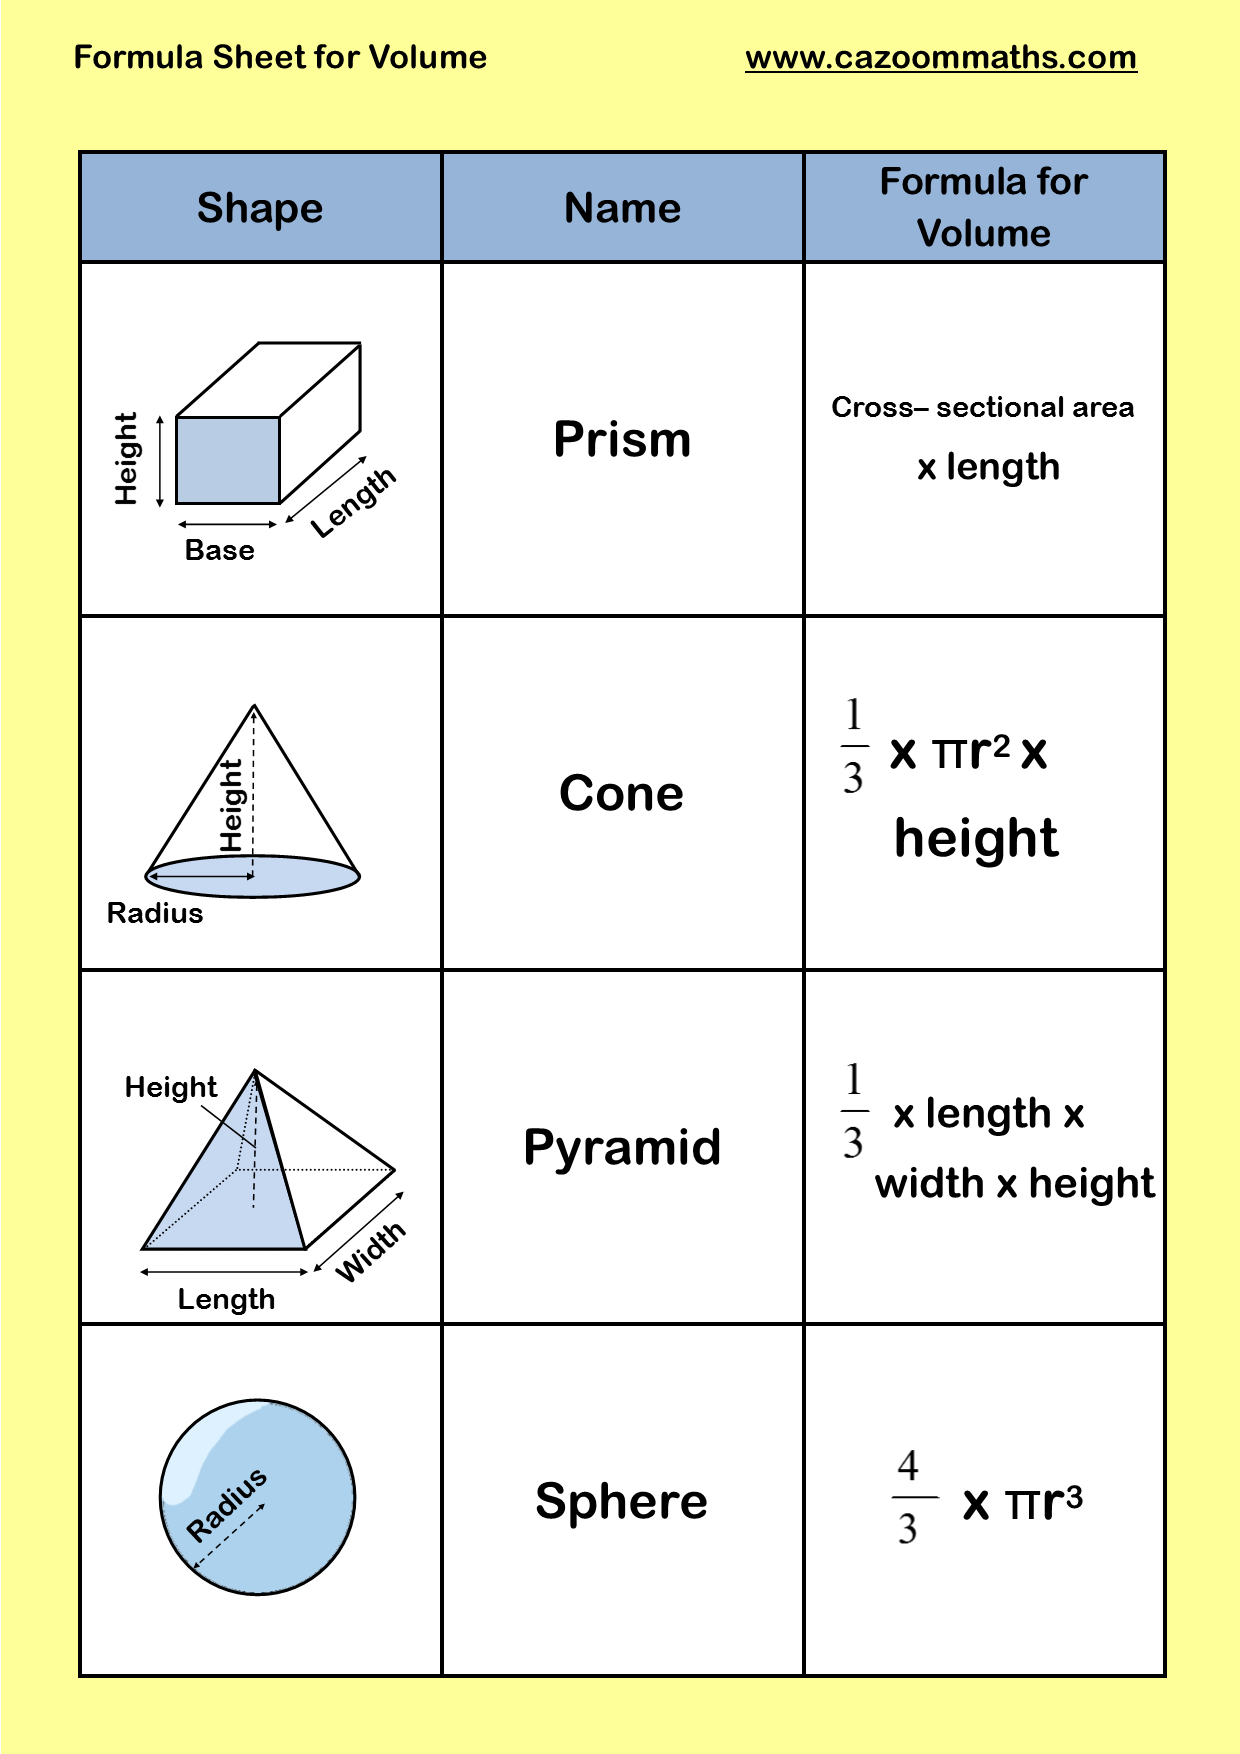 Maths worksheets | School | Math formulas, Gcse math, Math cheat sheet